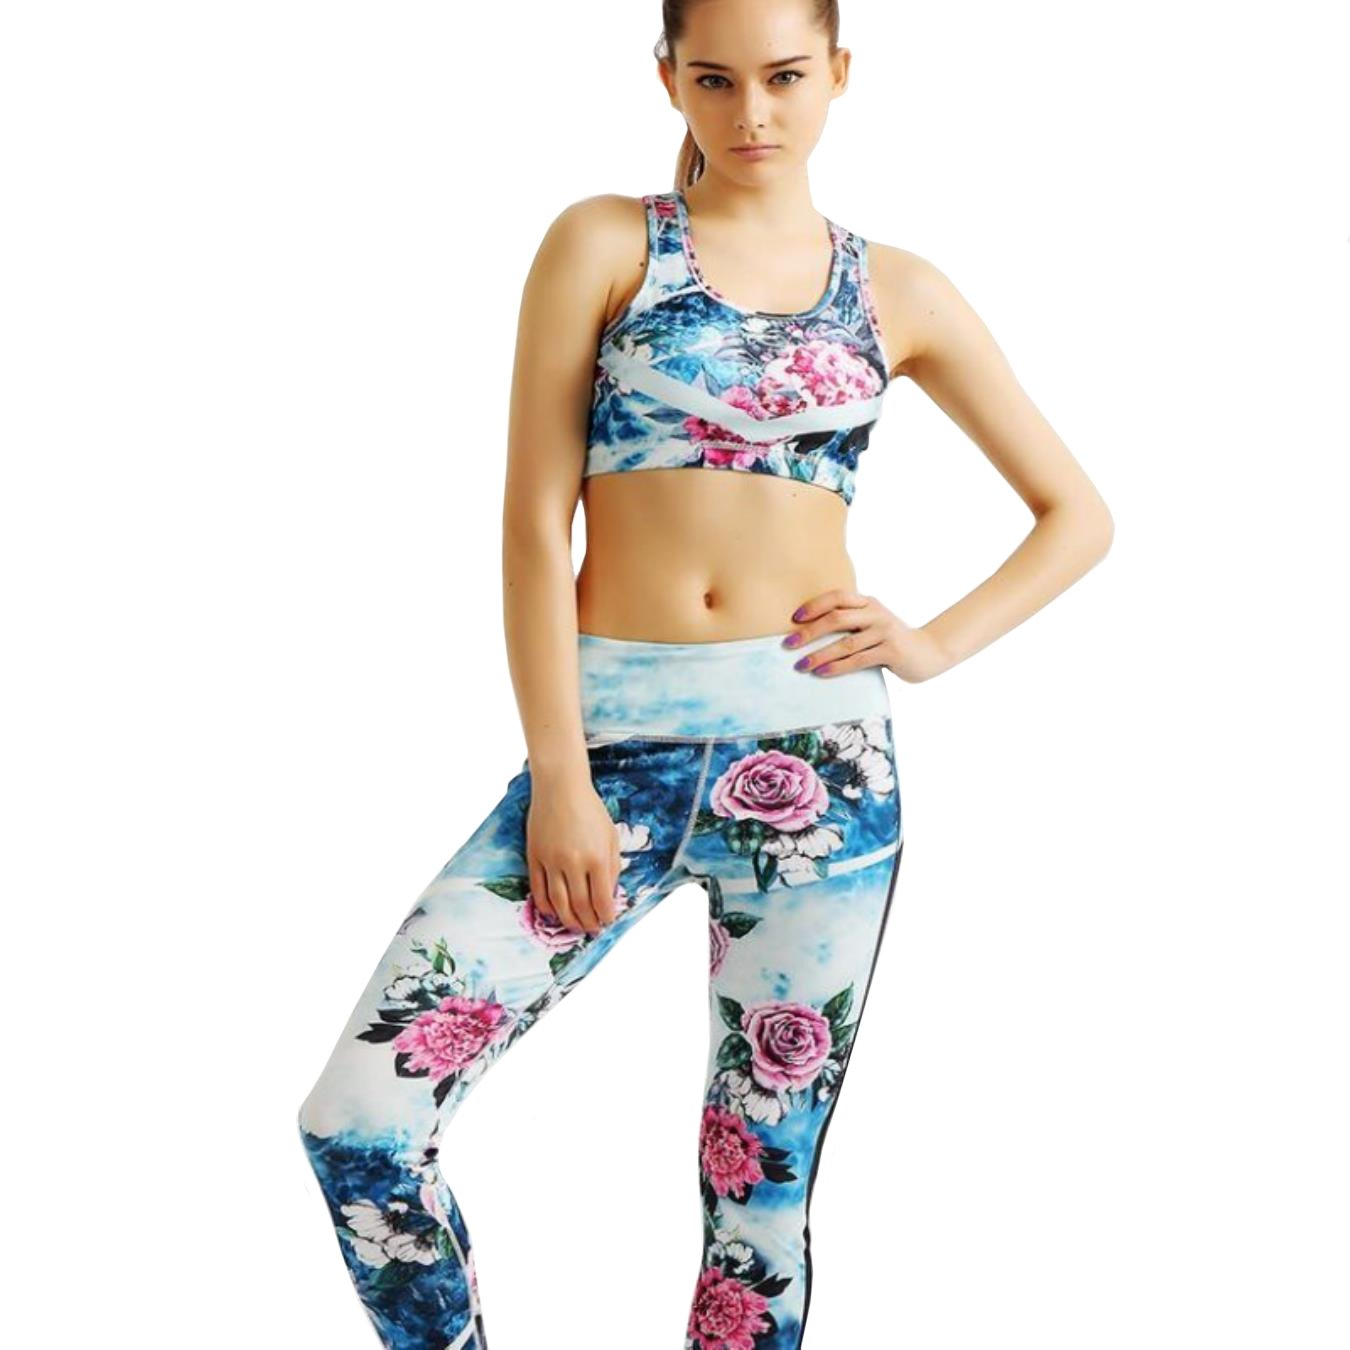 TUONFC Women Yoga Bra Pants Set Sport Fitness Push Up Tights Quick Drying Compression Trousers Sets